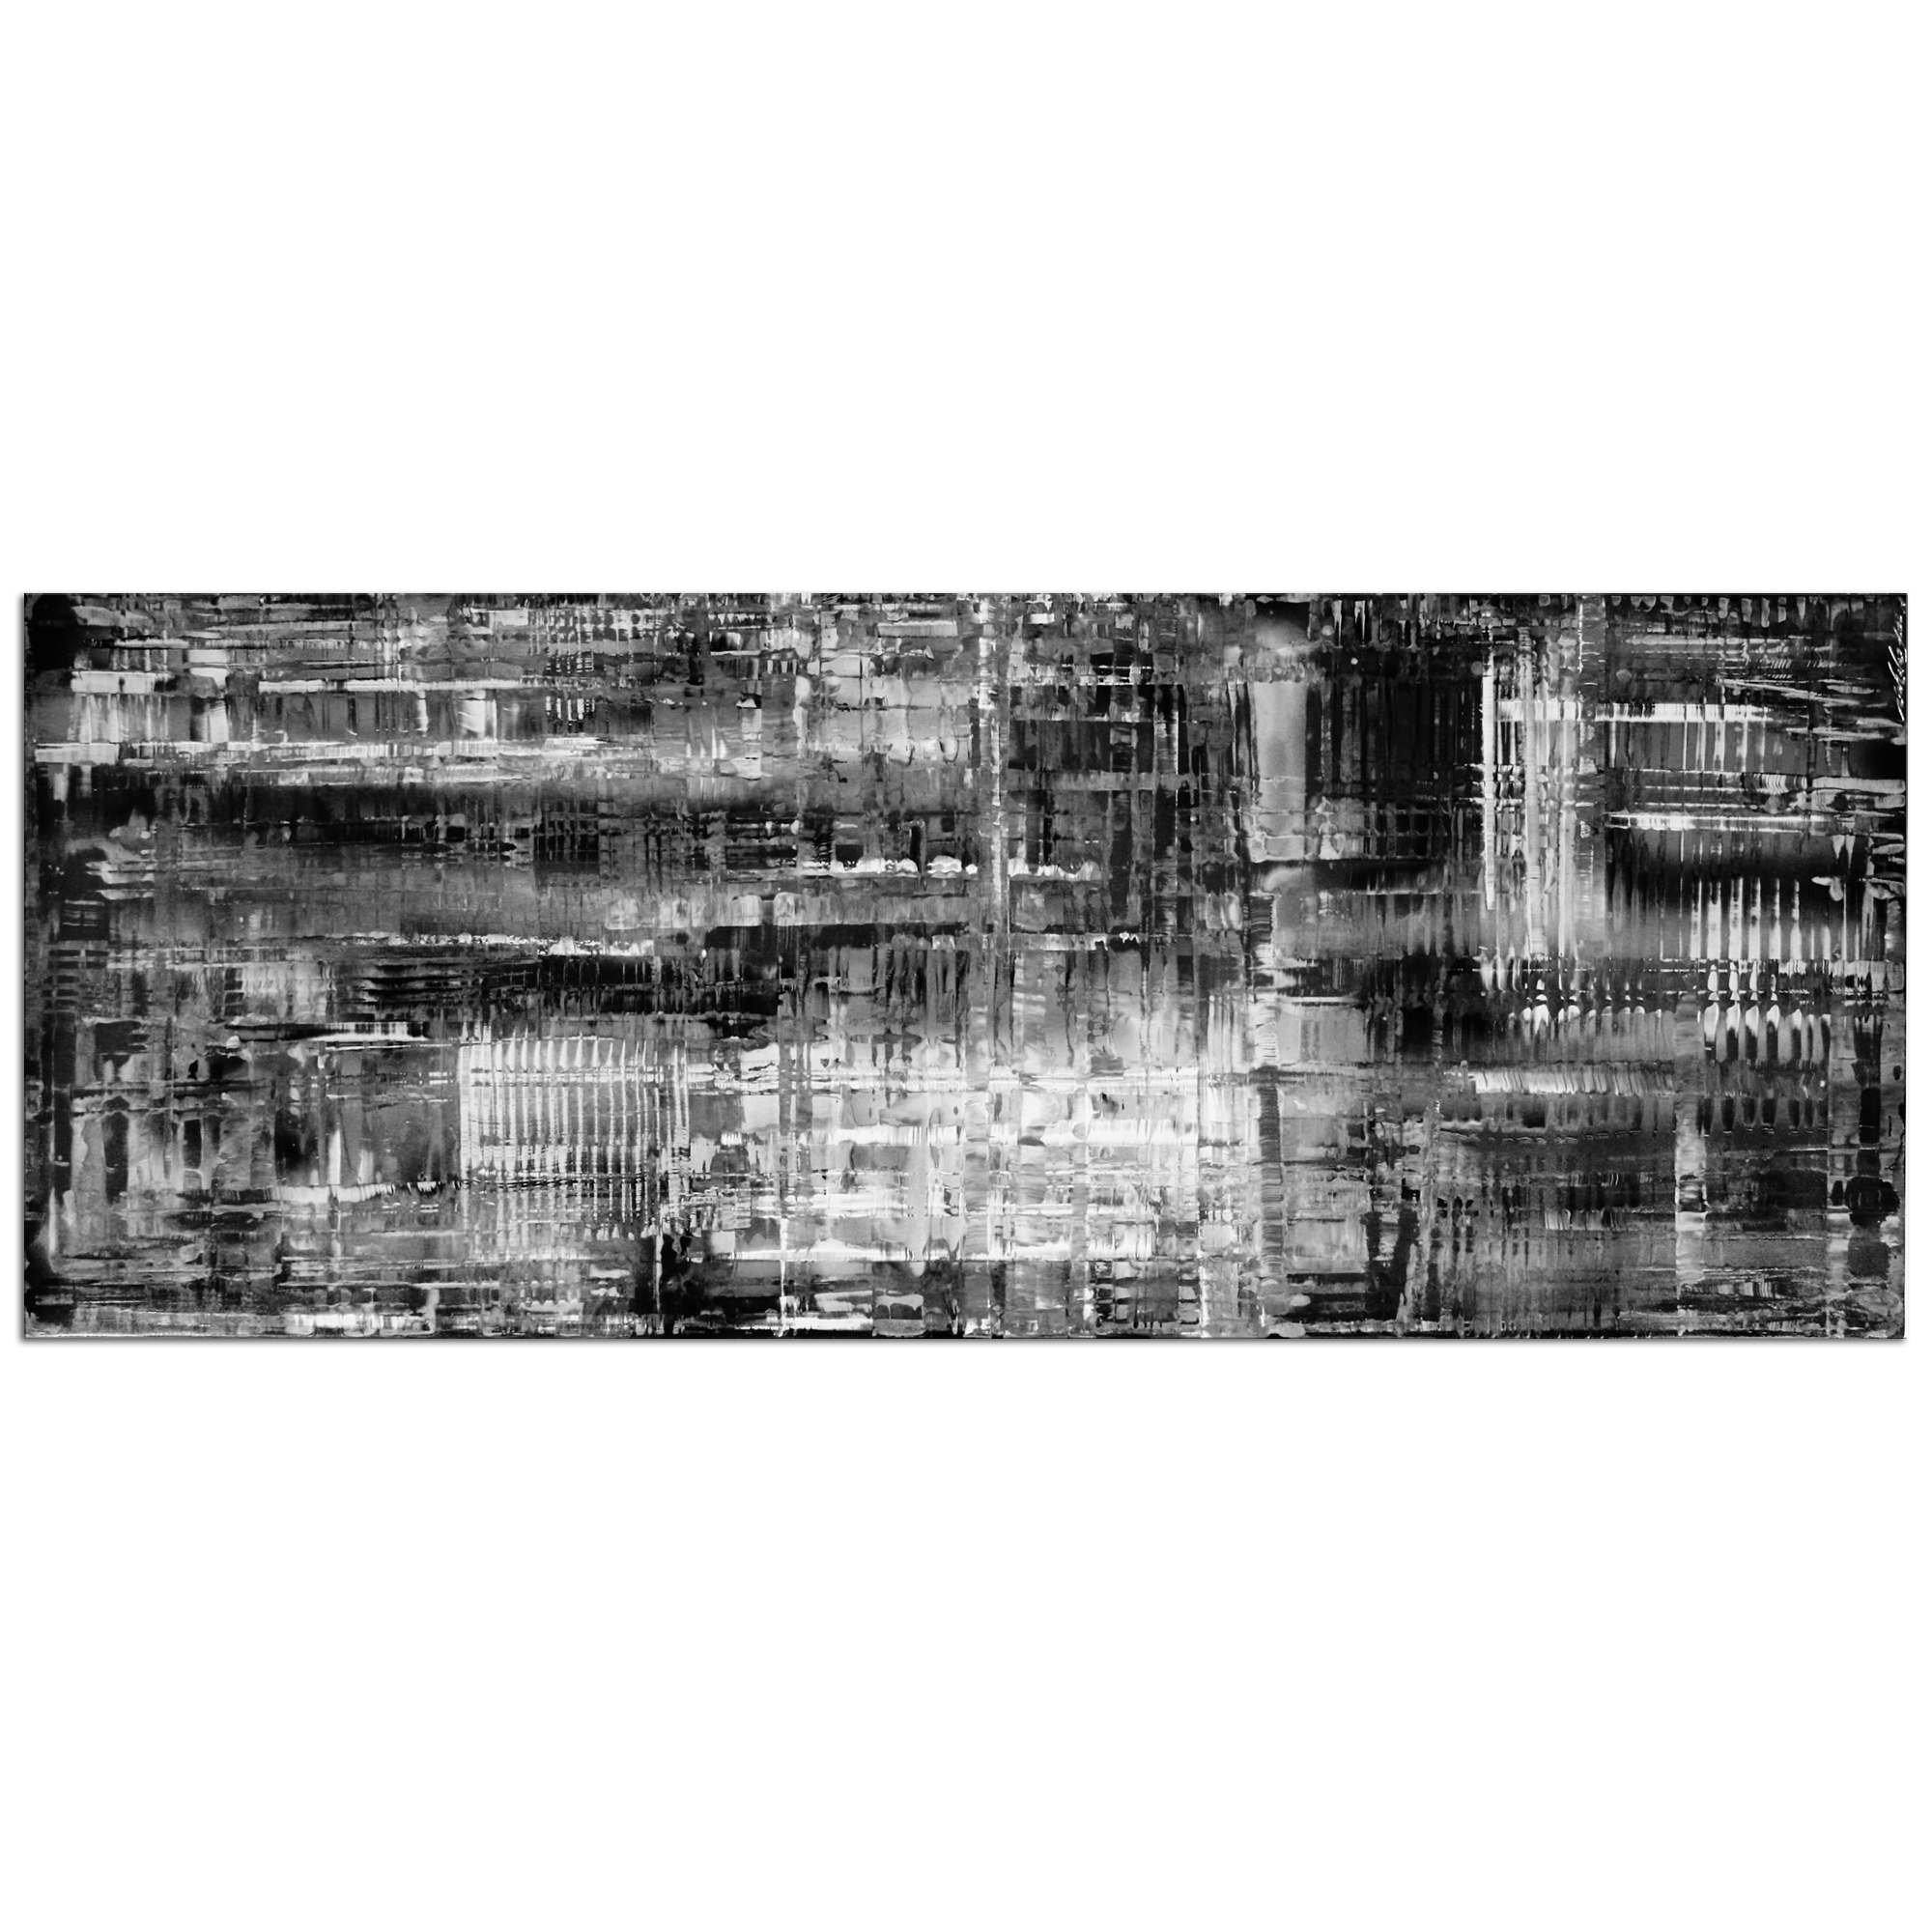 Black & White Art 'Aporia B/w' - Minimalist Monochrome Decor - Contemporary Artwork - Modern Metal Wall Art - Urban Style Metallic Painting